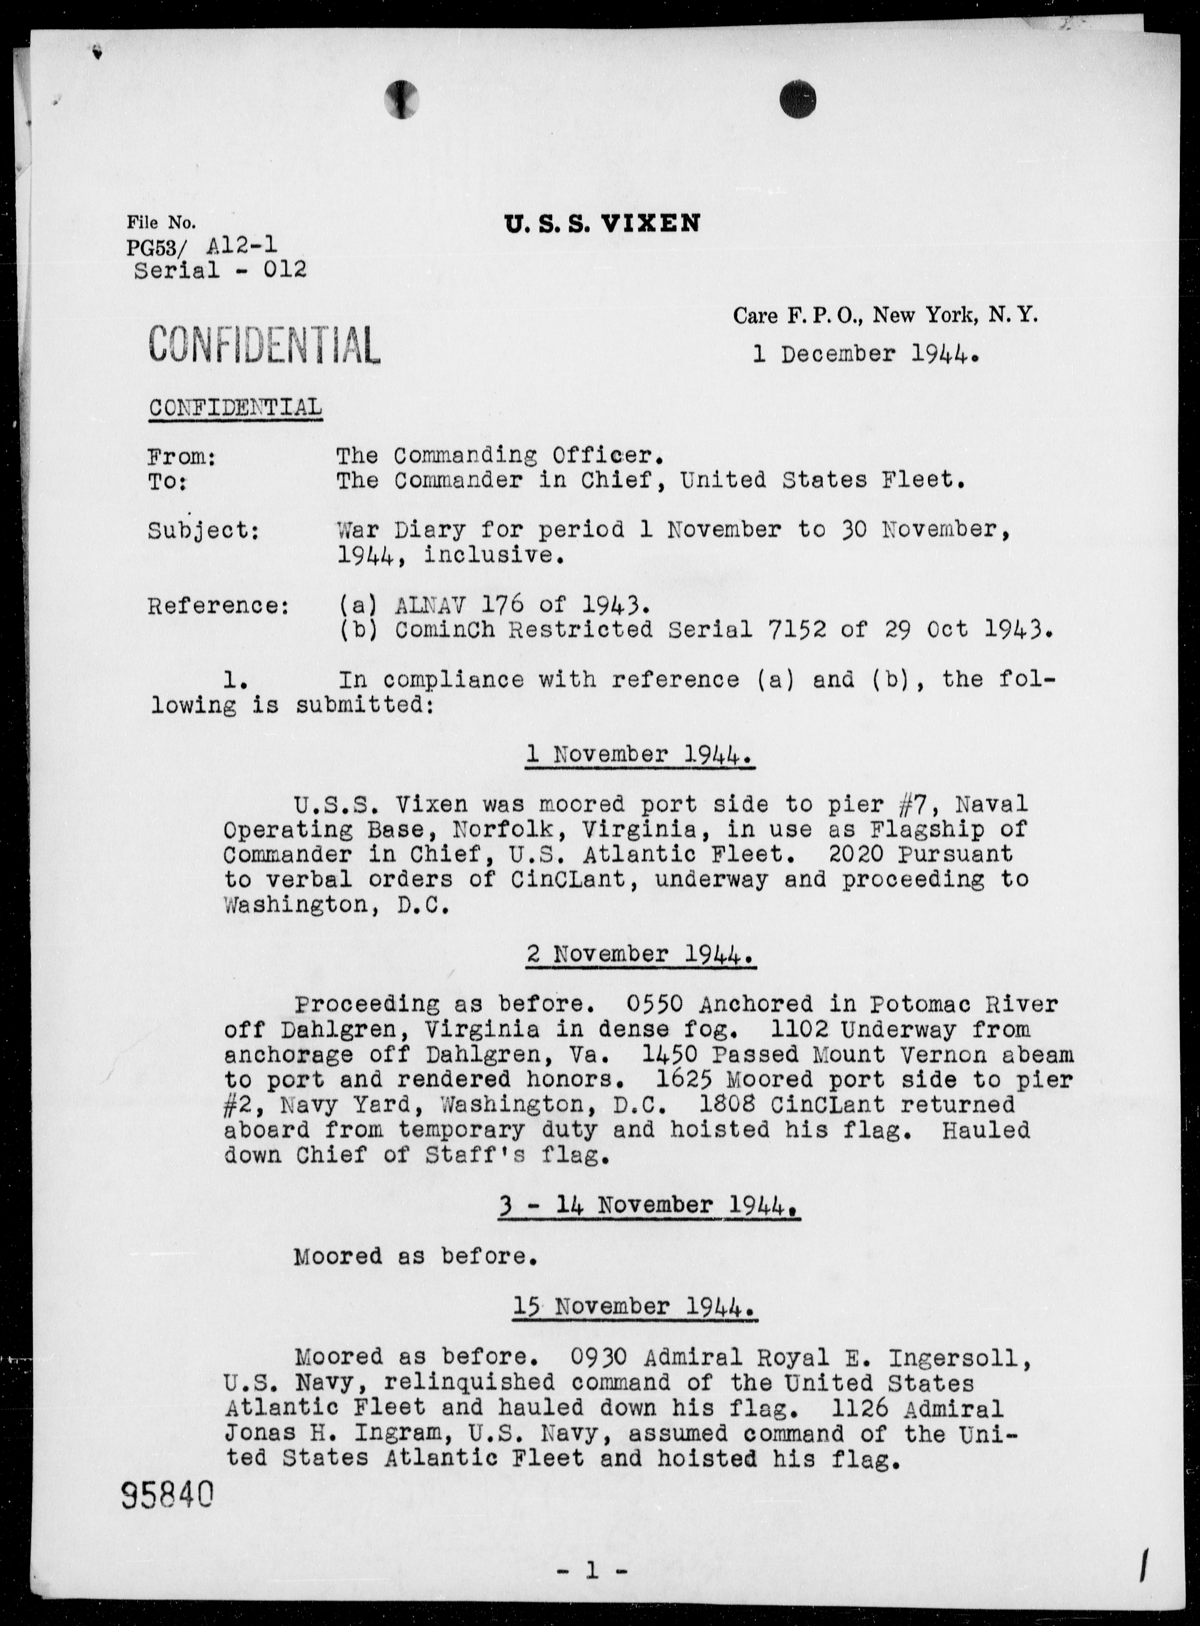 war diary of uss vixen